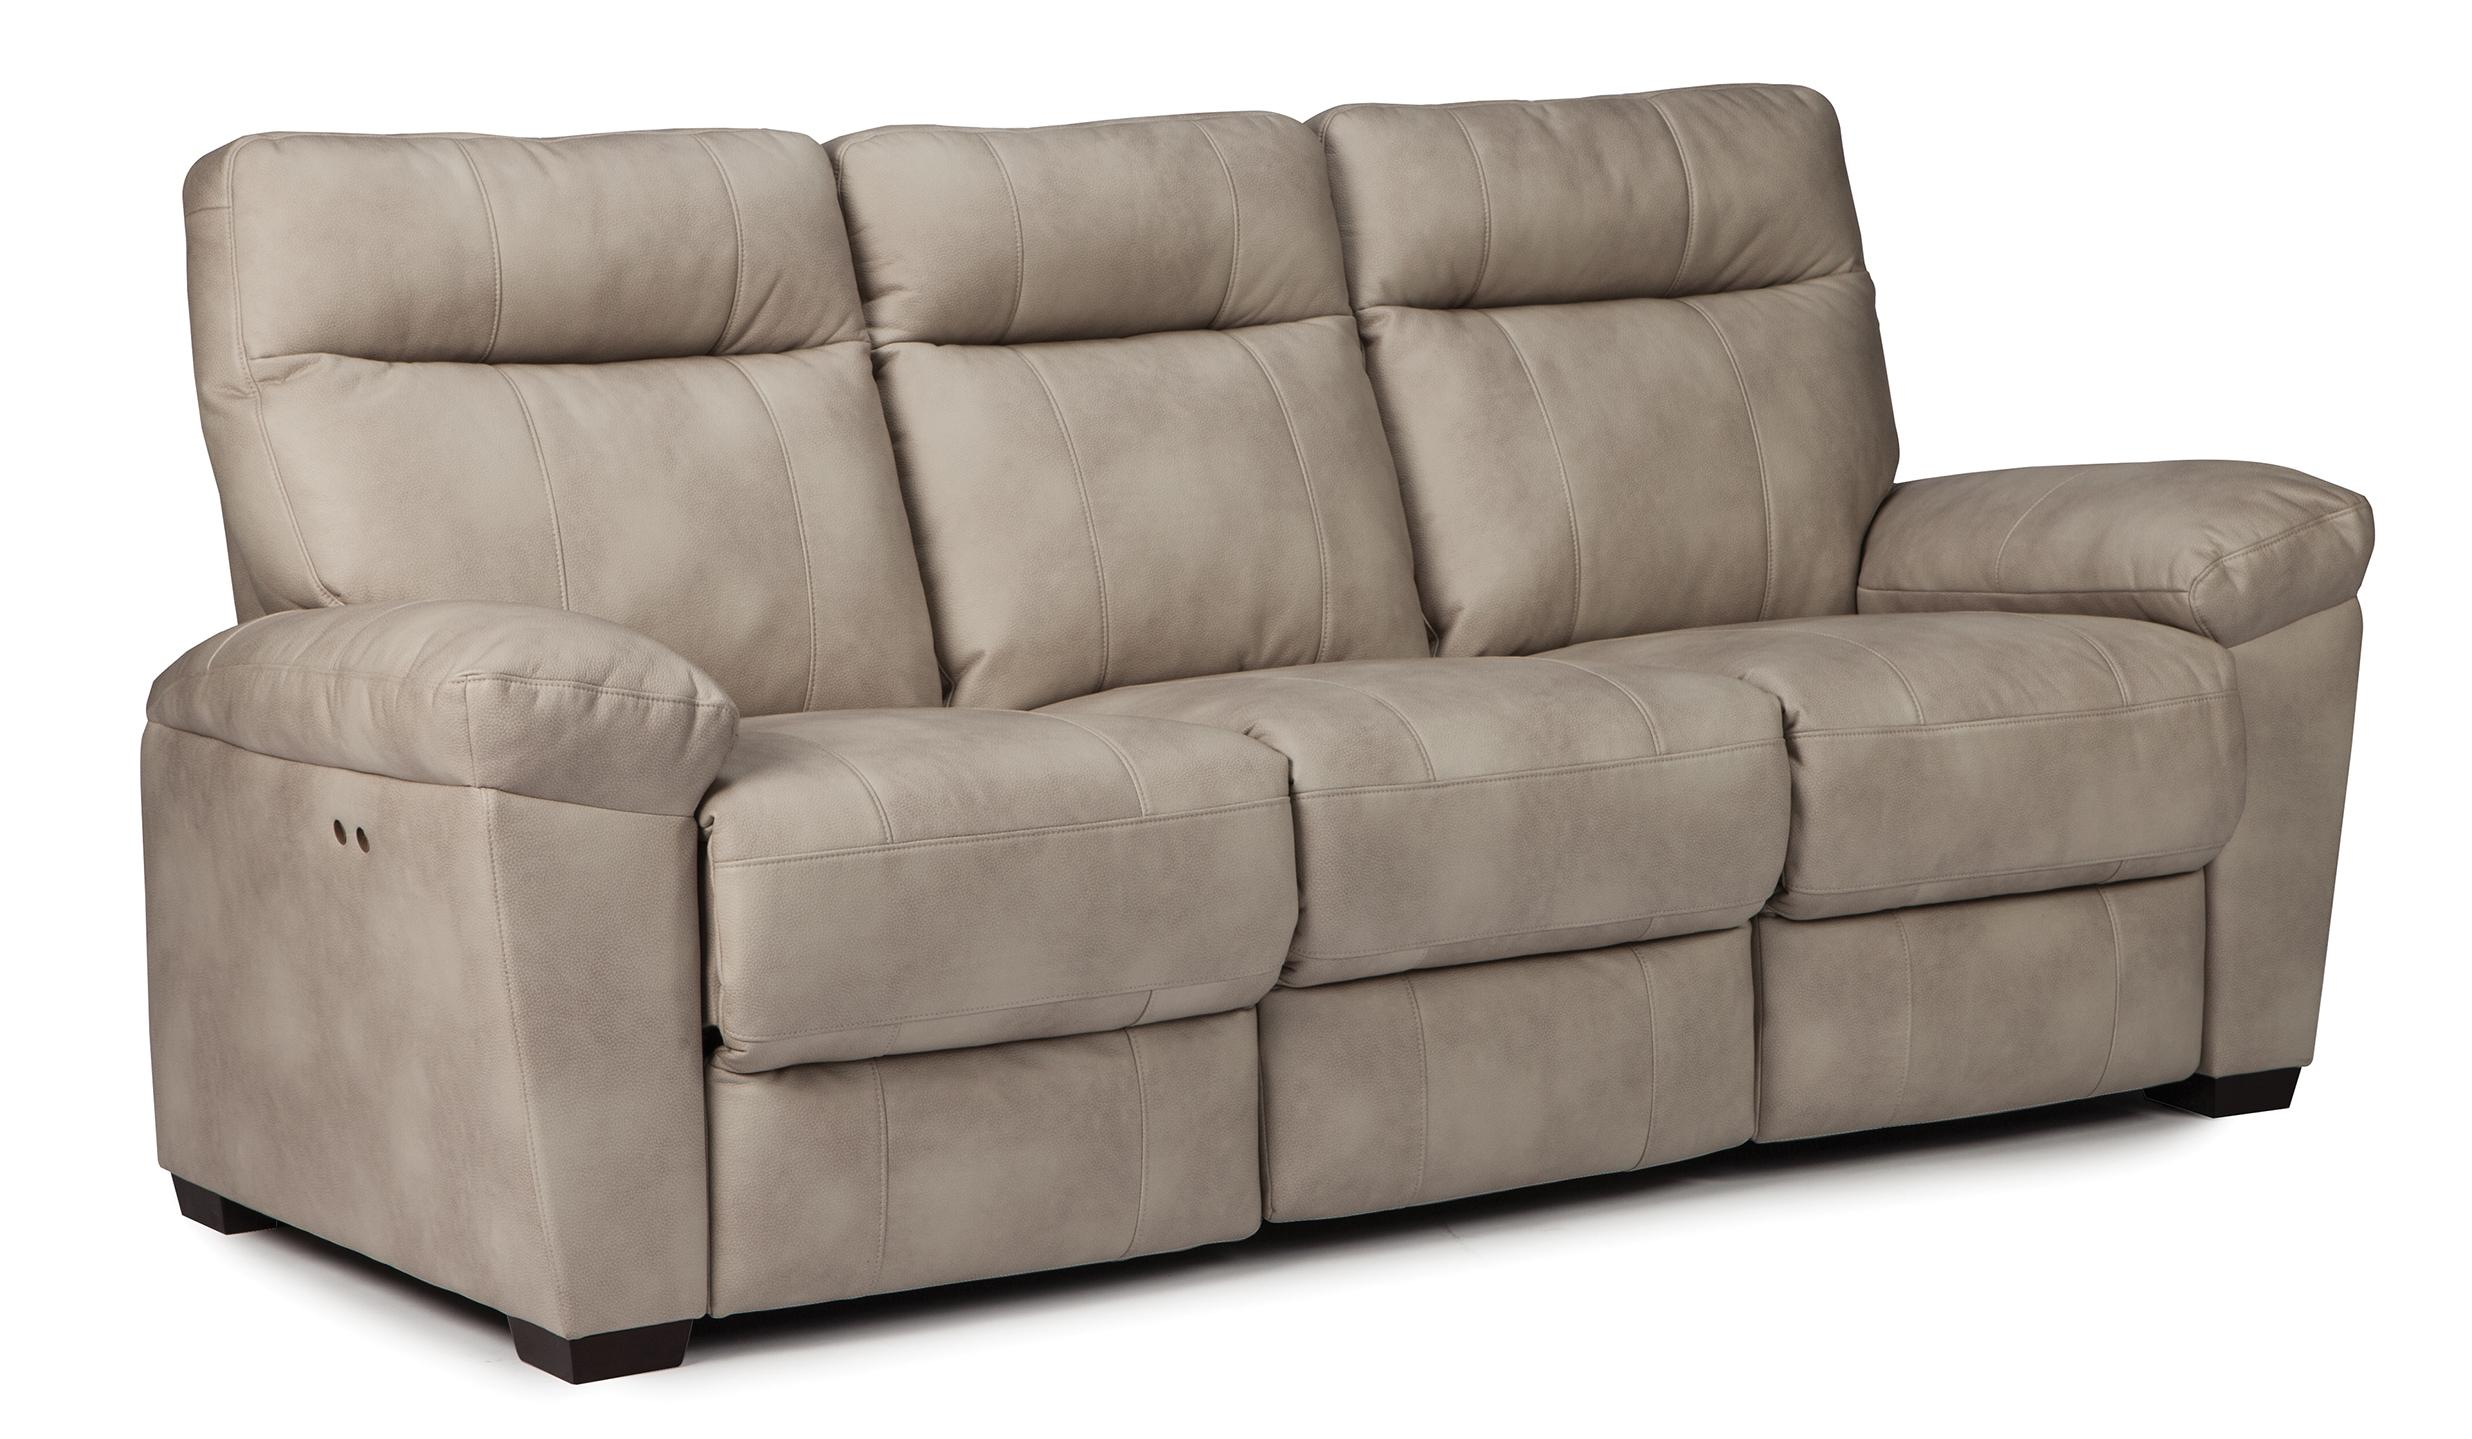 Best Home Furnishings Makena Power Reclining Sofa - Item Number: S900UP2-27593AU